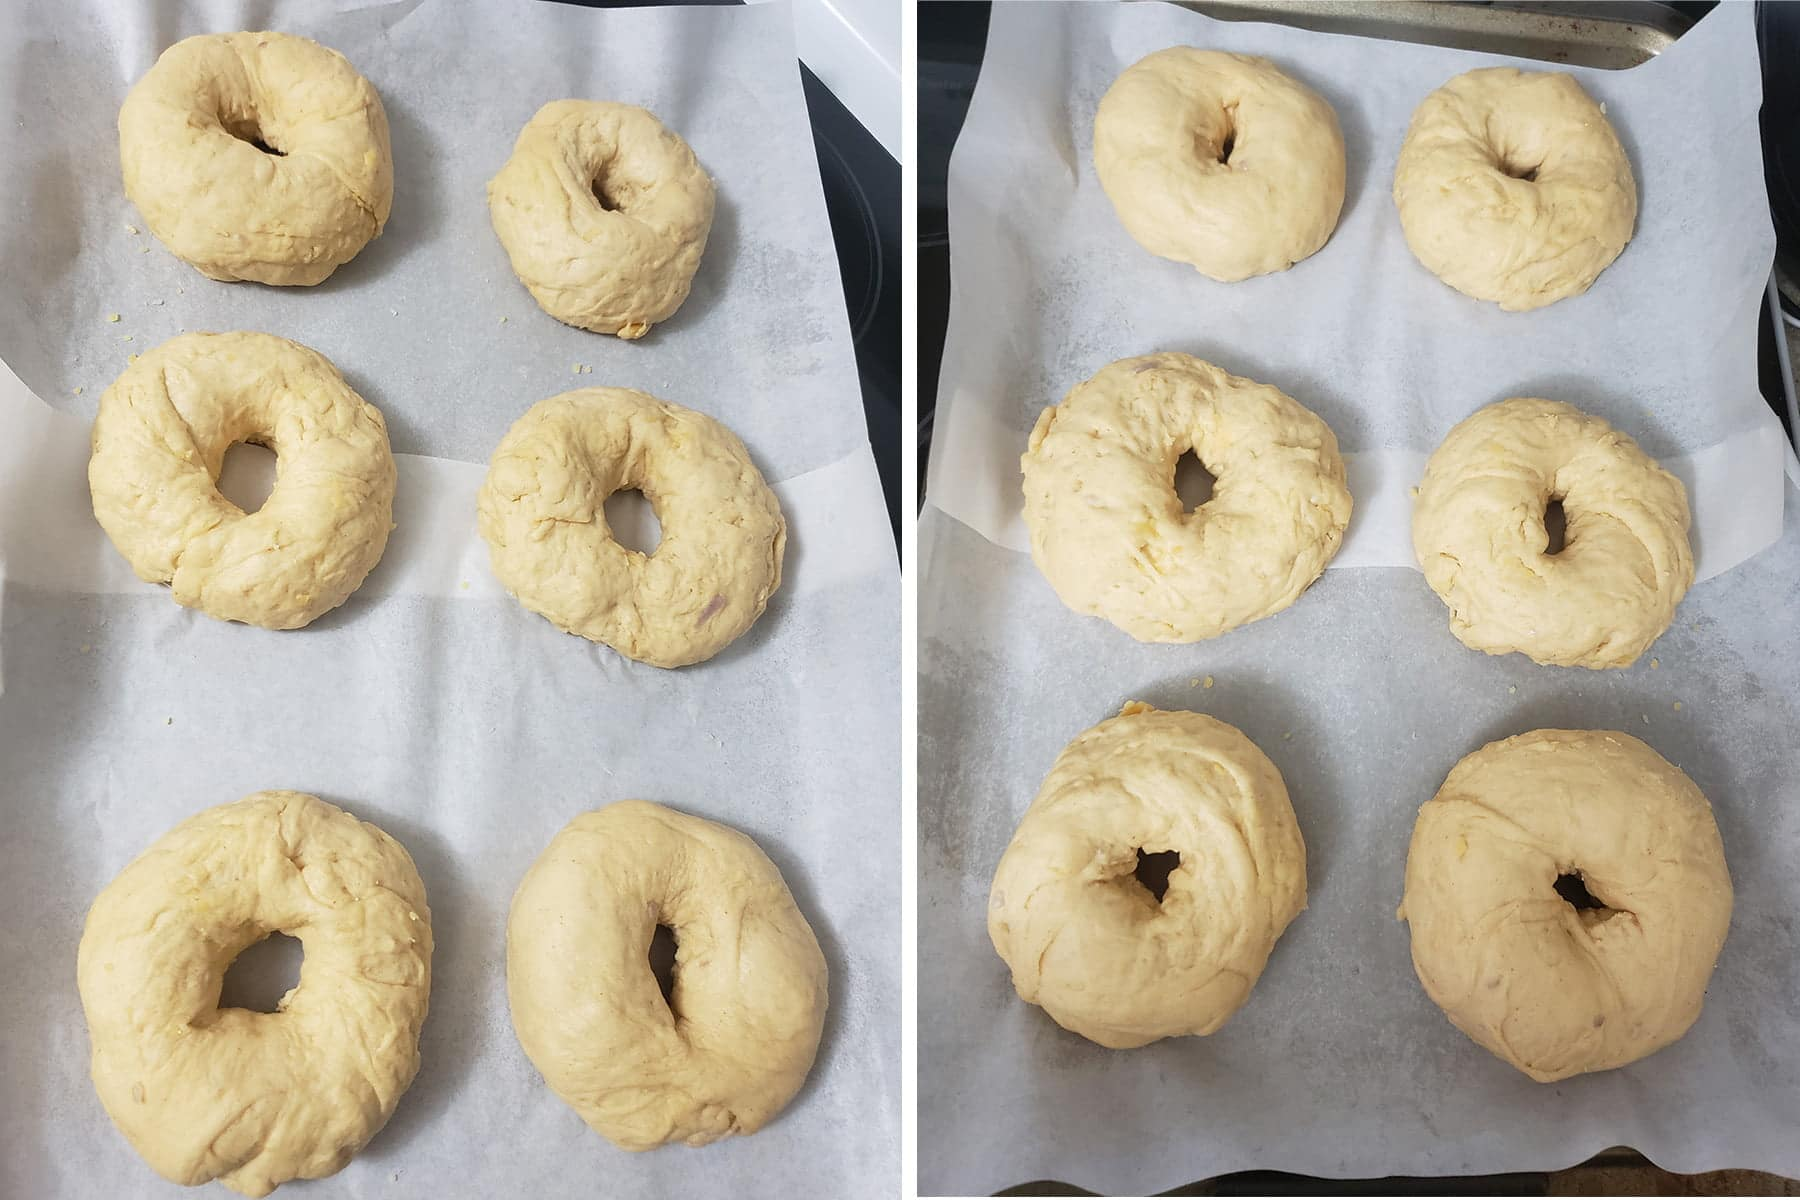 A two part compilation image showing a pan of 6 formed bagels, before and after the final rise.